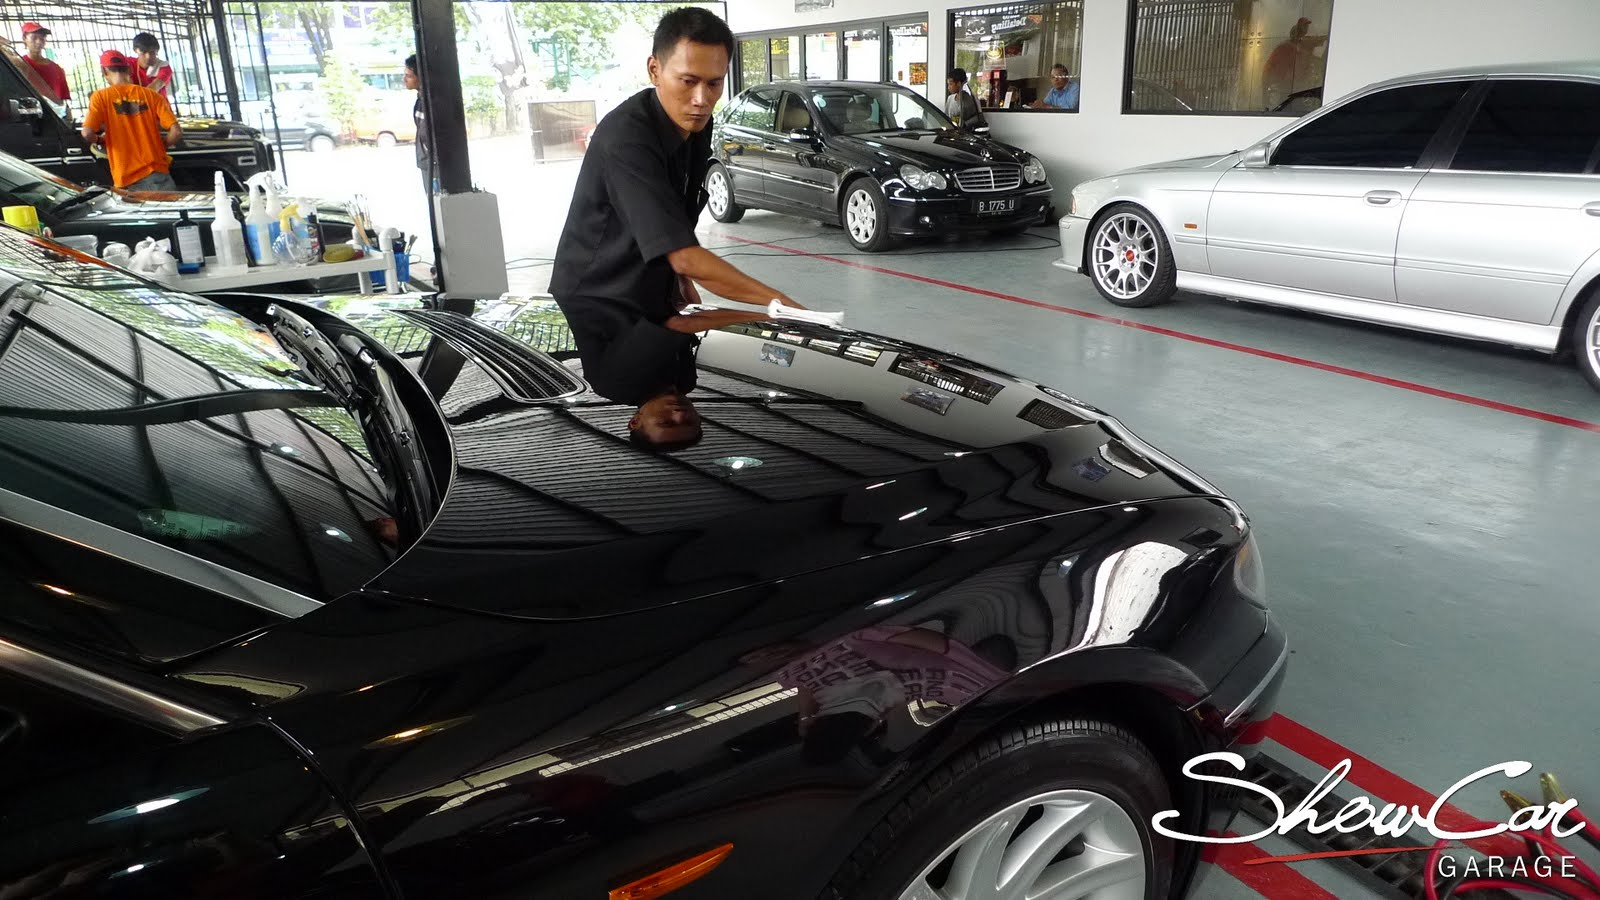 Show Car Indonesia From Passion To Profession - Show car garage